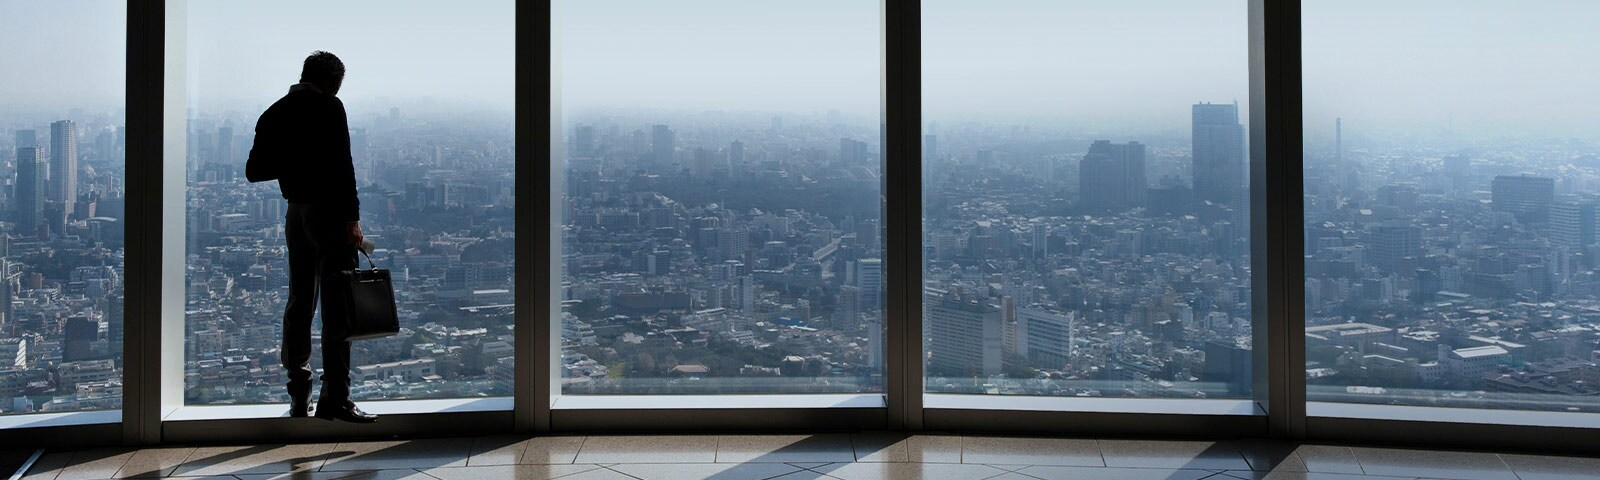 A man standing in front of big office-building windows that look out over the city